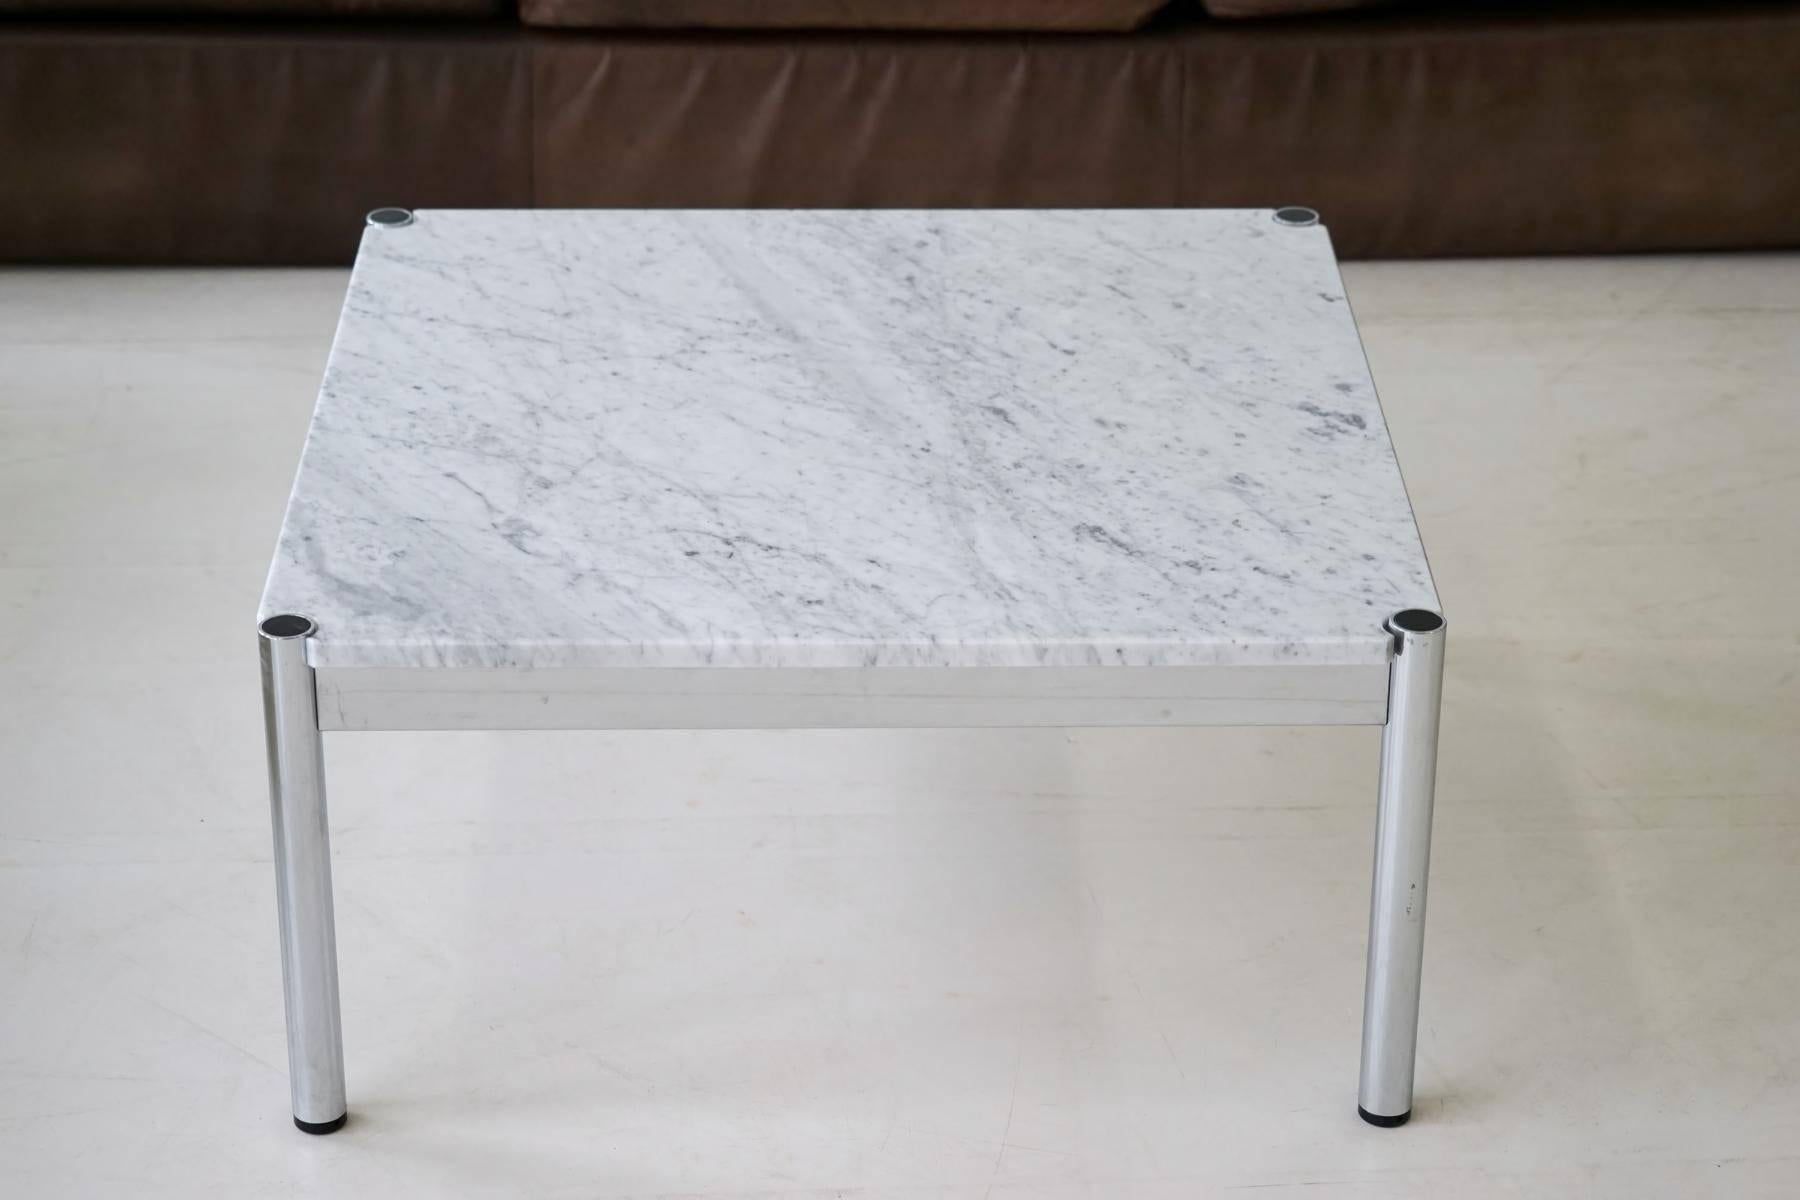 Usm Couchtisch Usm Haller Design Carrara Marble Chrome Coffee Couch Sofa Side Table